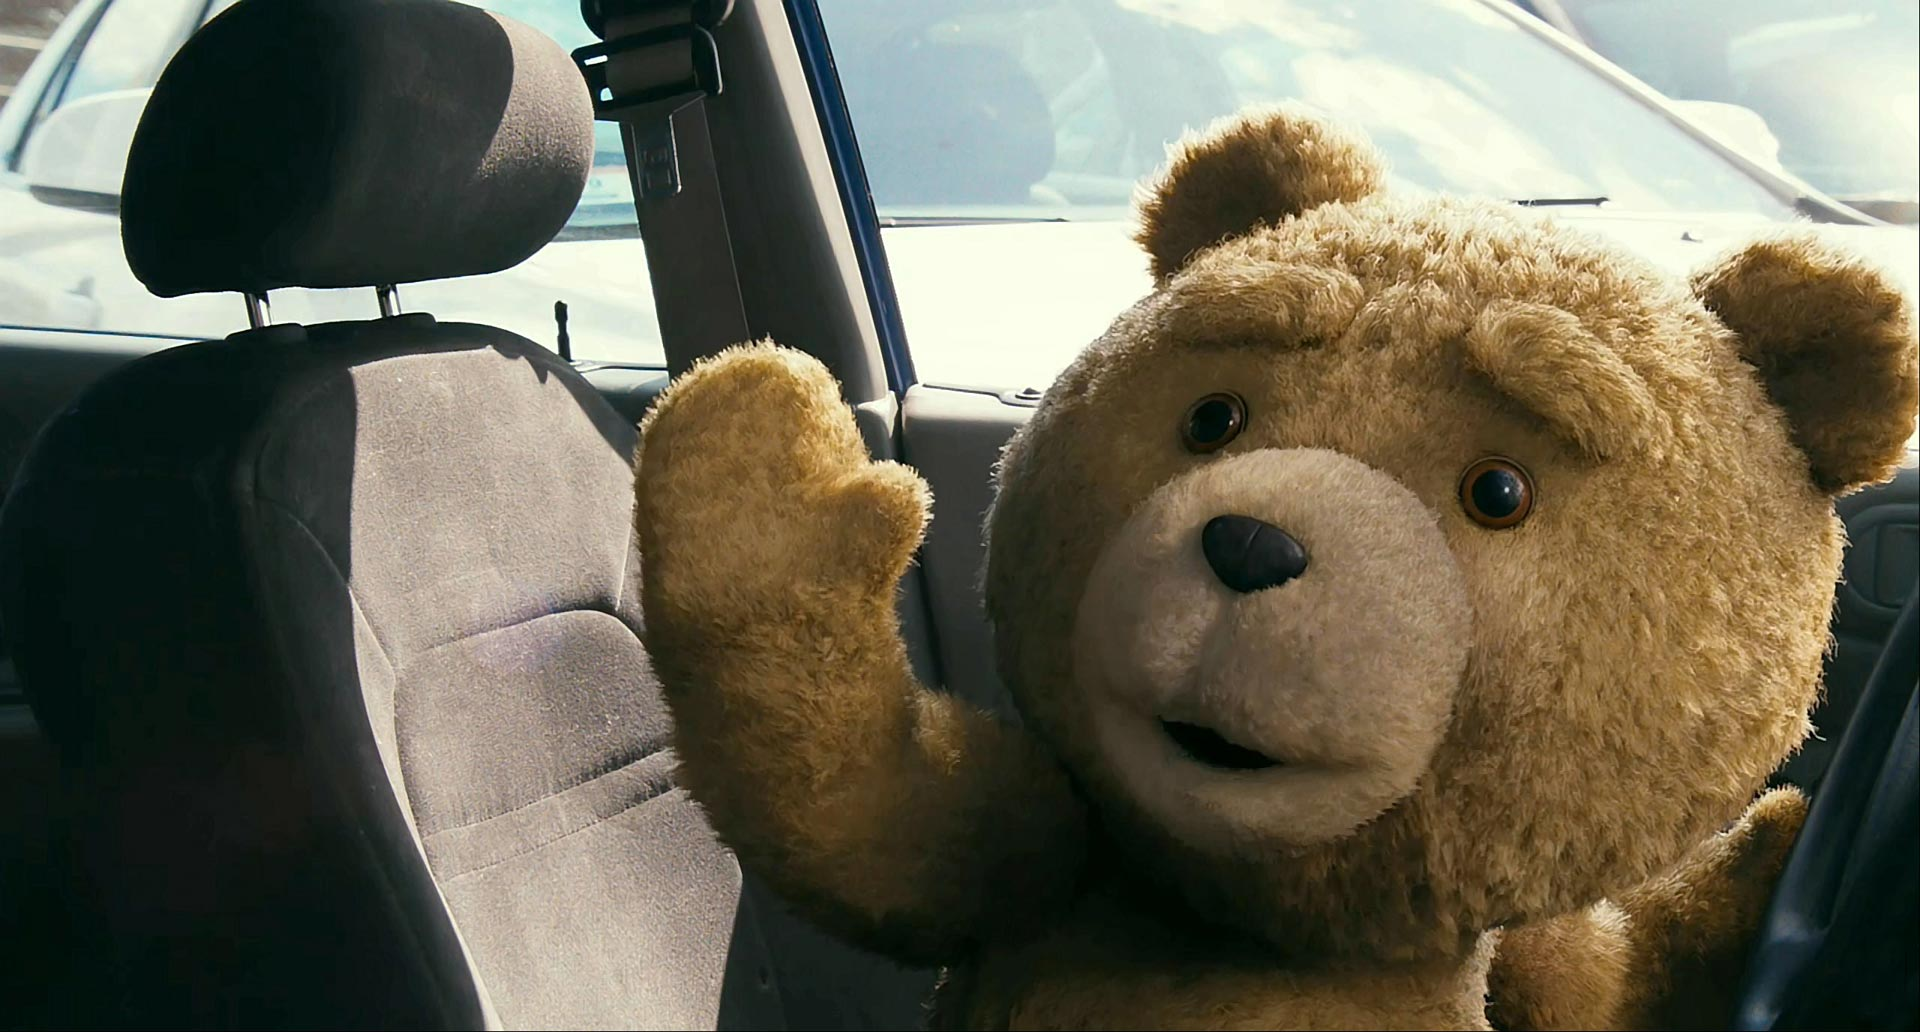 https://i1.wp.com/www.filmofilia.com/wp-content/uploads/2012/04/ted-movie-photo.jpg